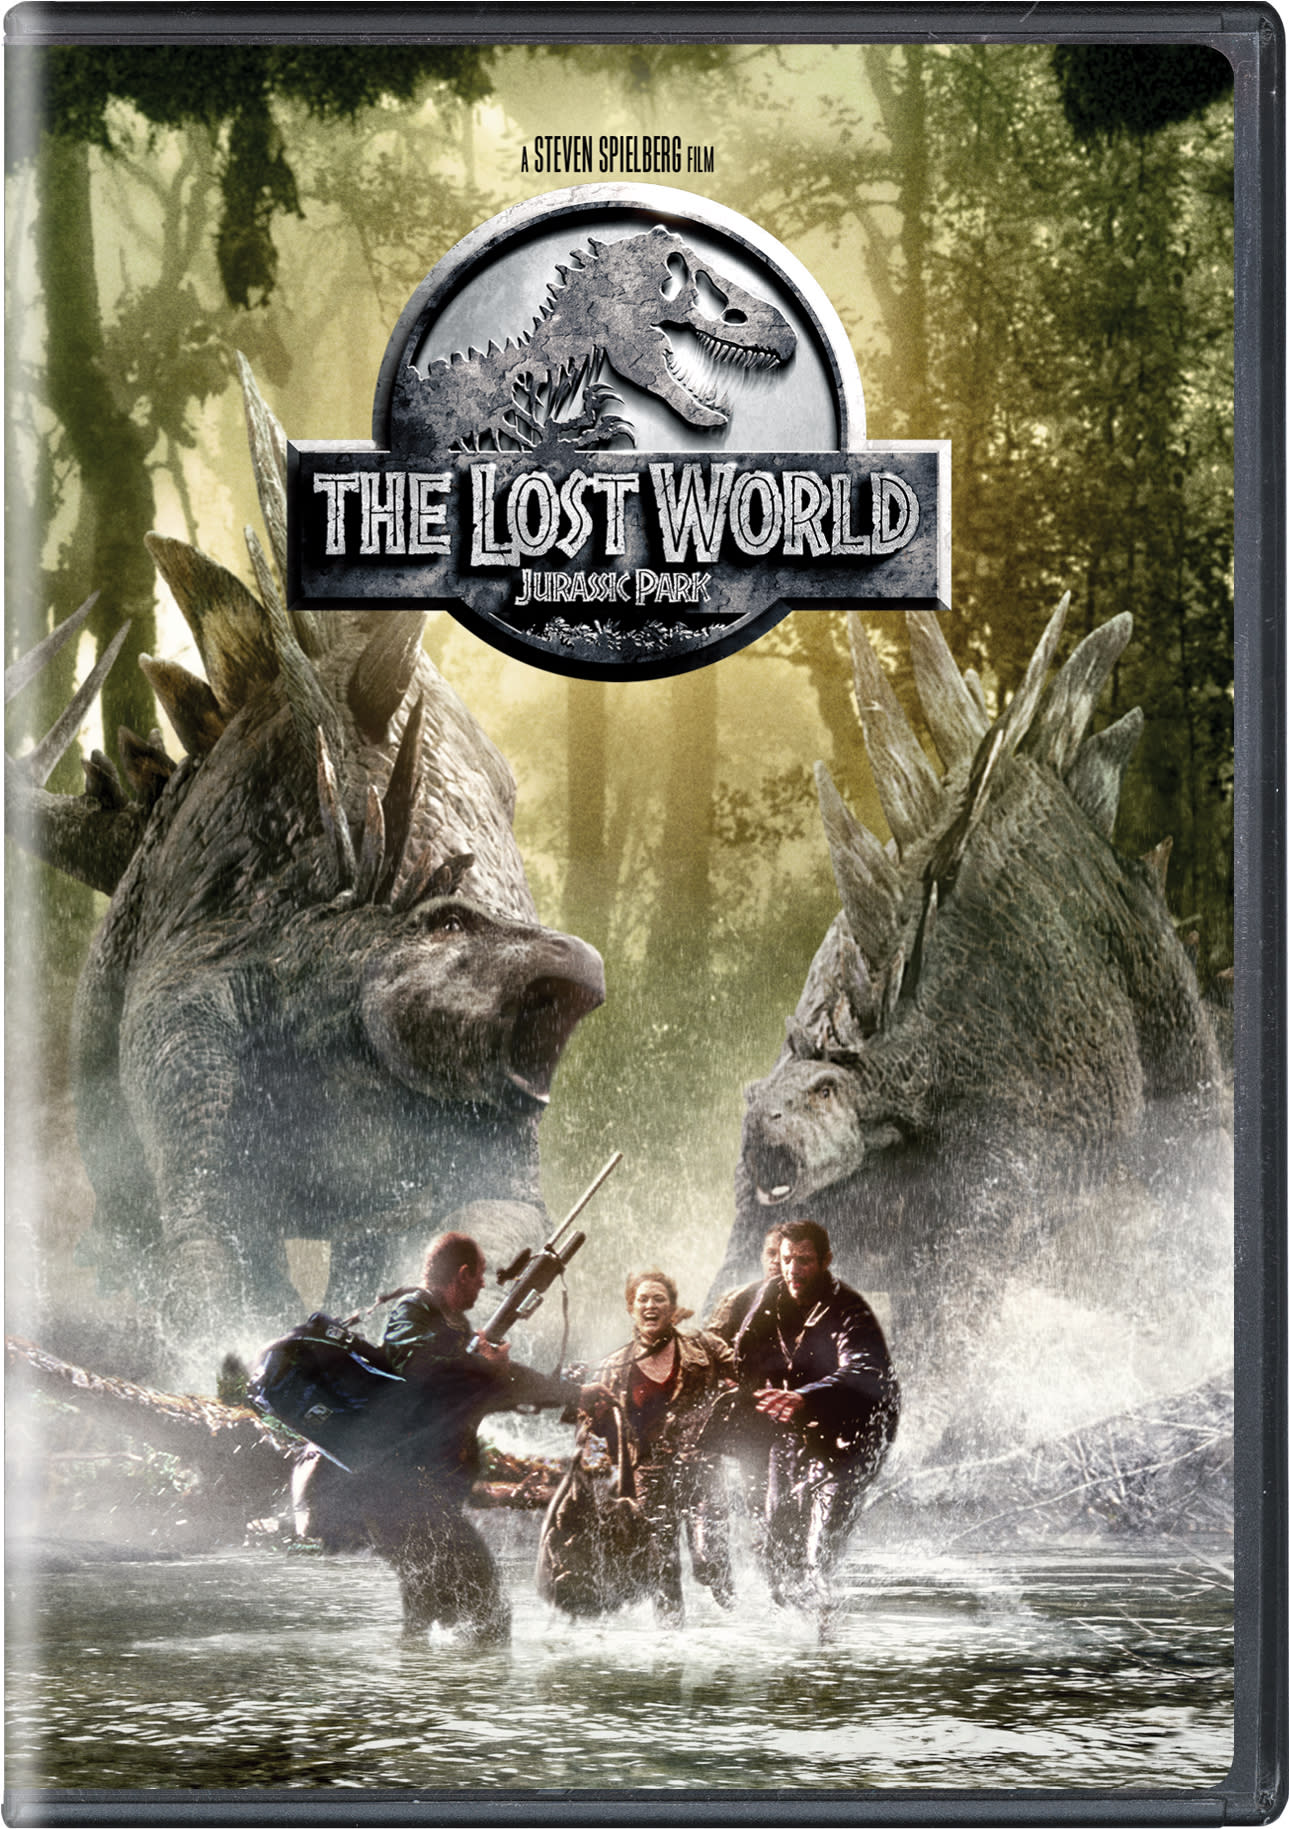 The Lost World - Jurassic Park [DVD]